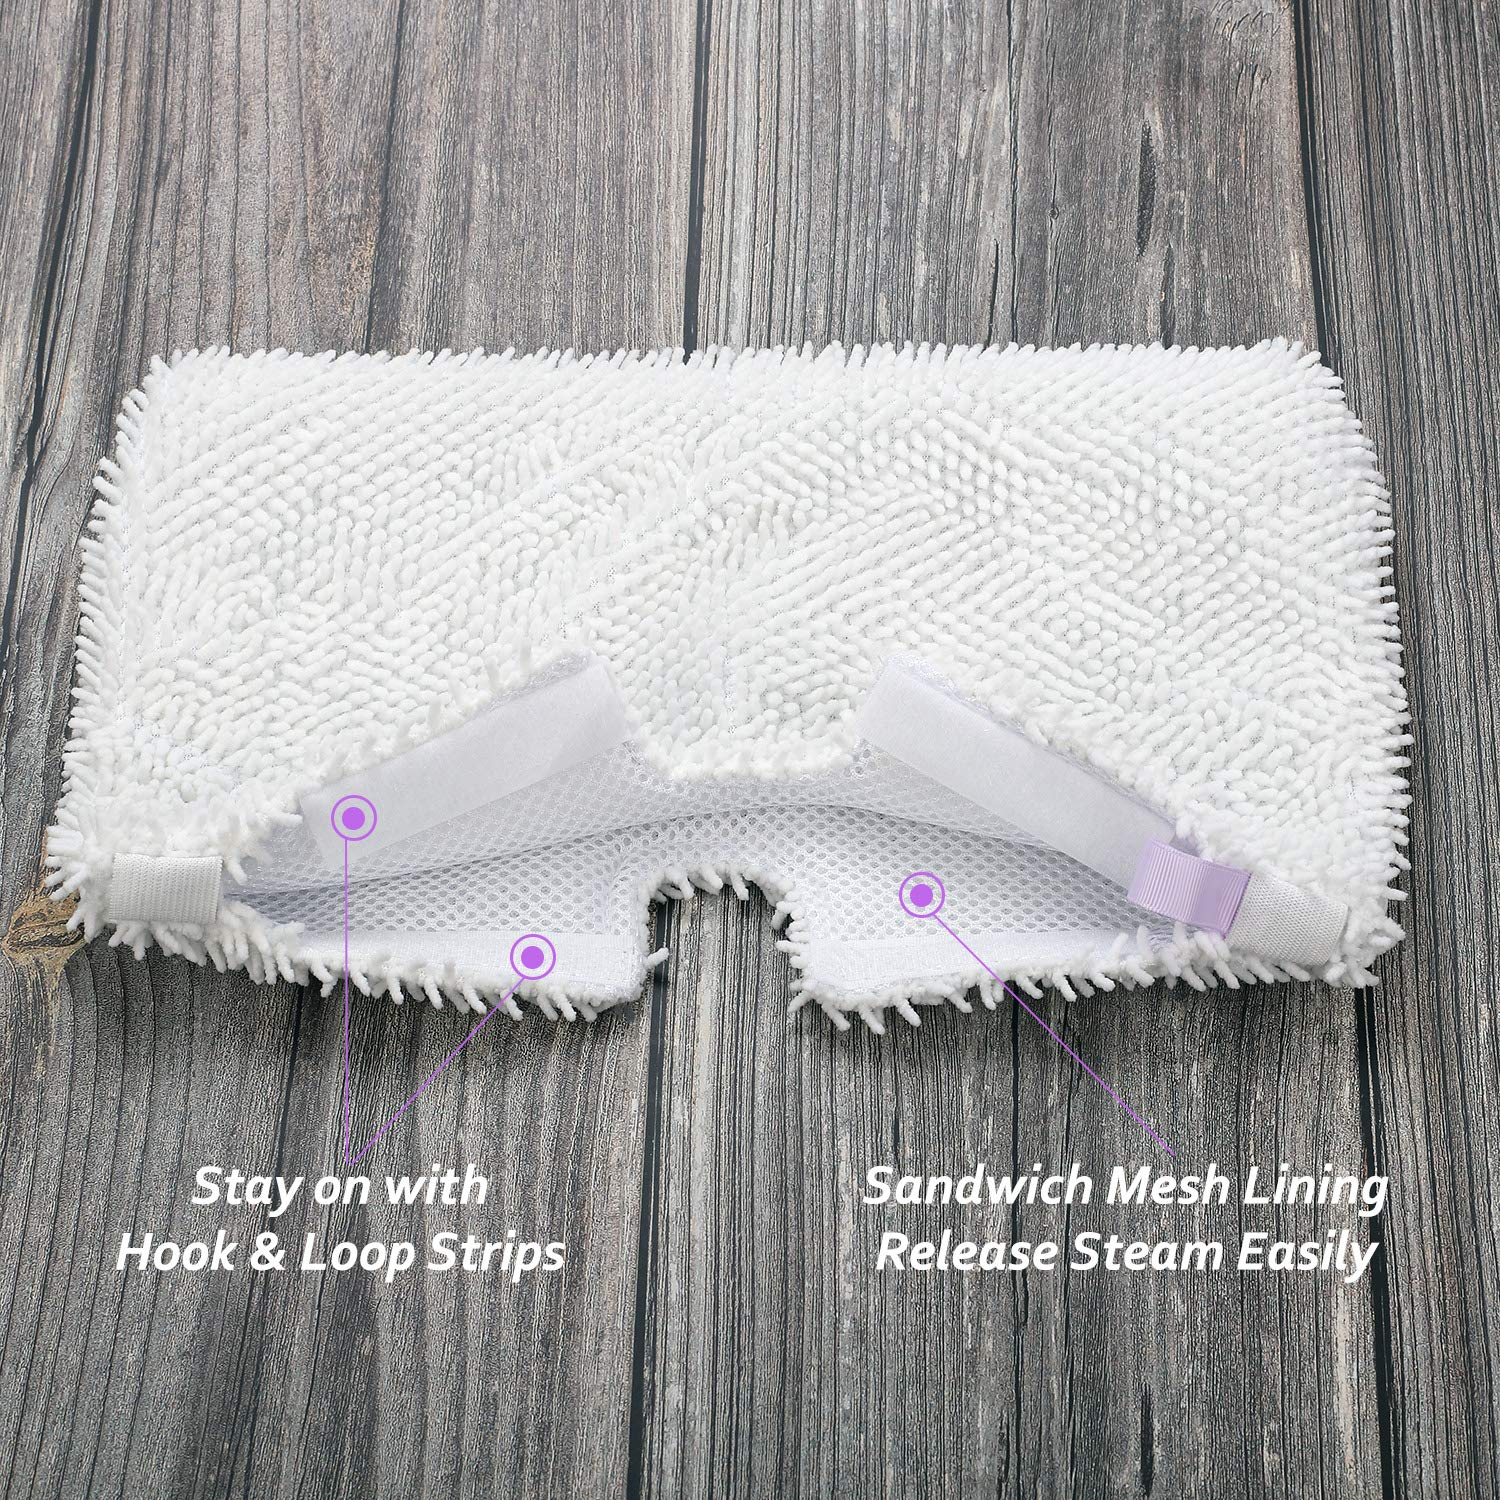 5 Replacement Standard Pads for Shark Pocket Mop S3501 S3550 S3601 S3901